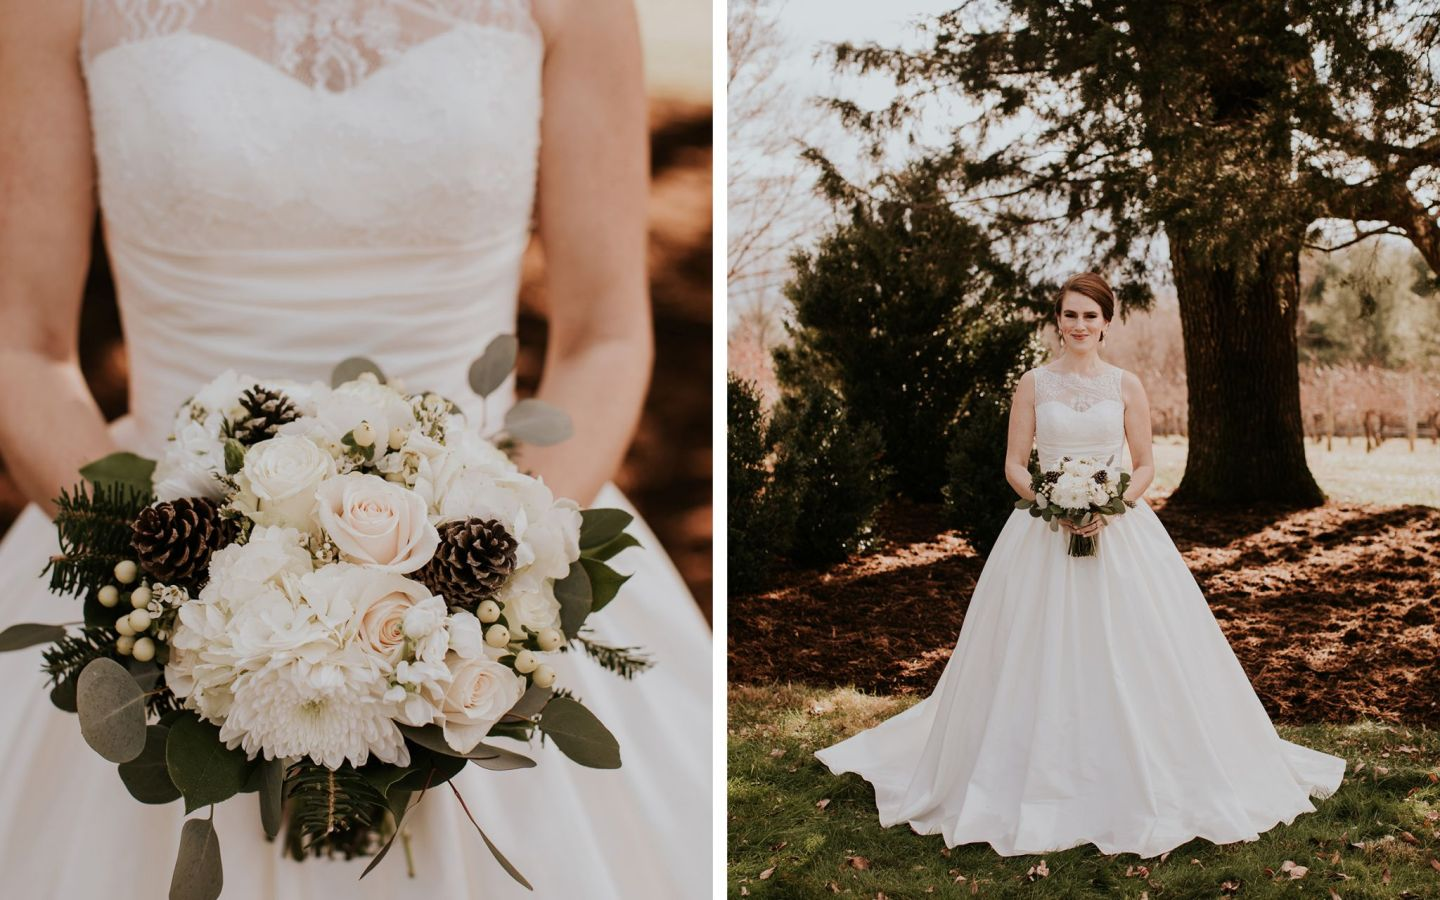 charlottesville bride - charlottesville wedding - augusta jones wedding dress - augusta jones paz - winter bride - farmhouse at veritas wedding - winter bride bouquet